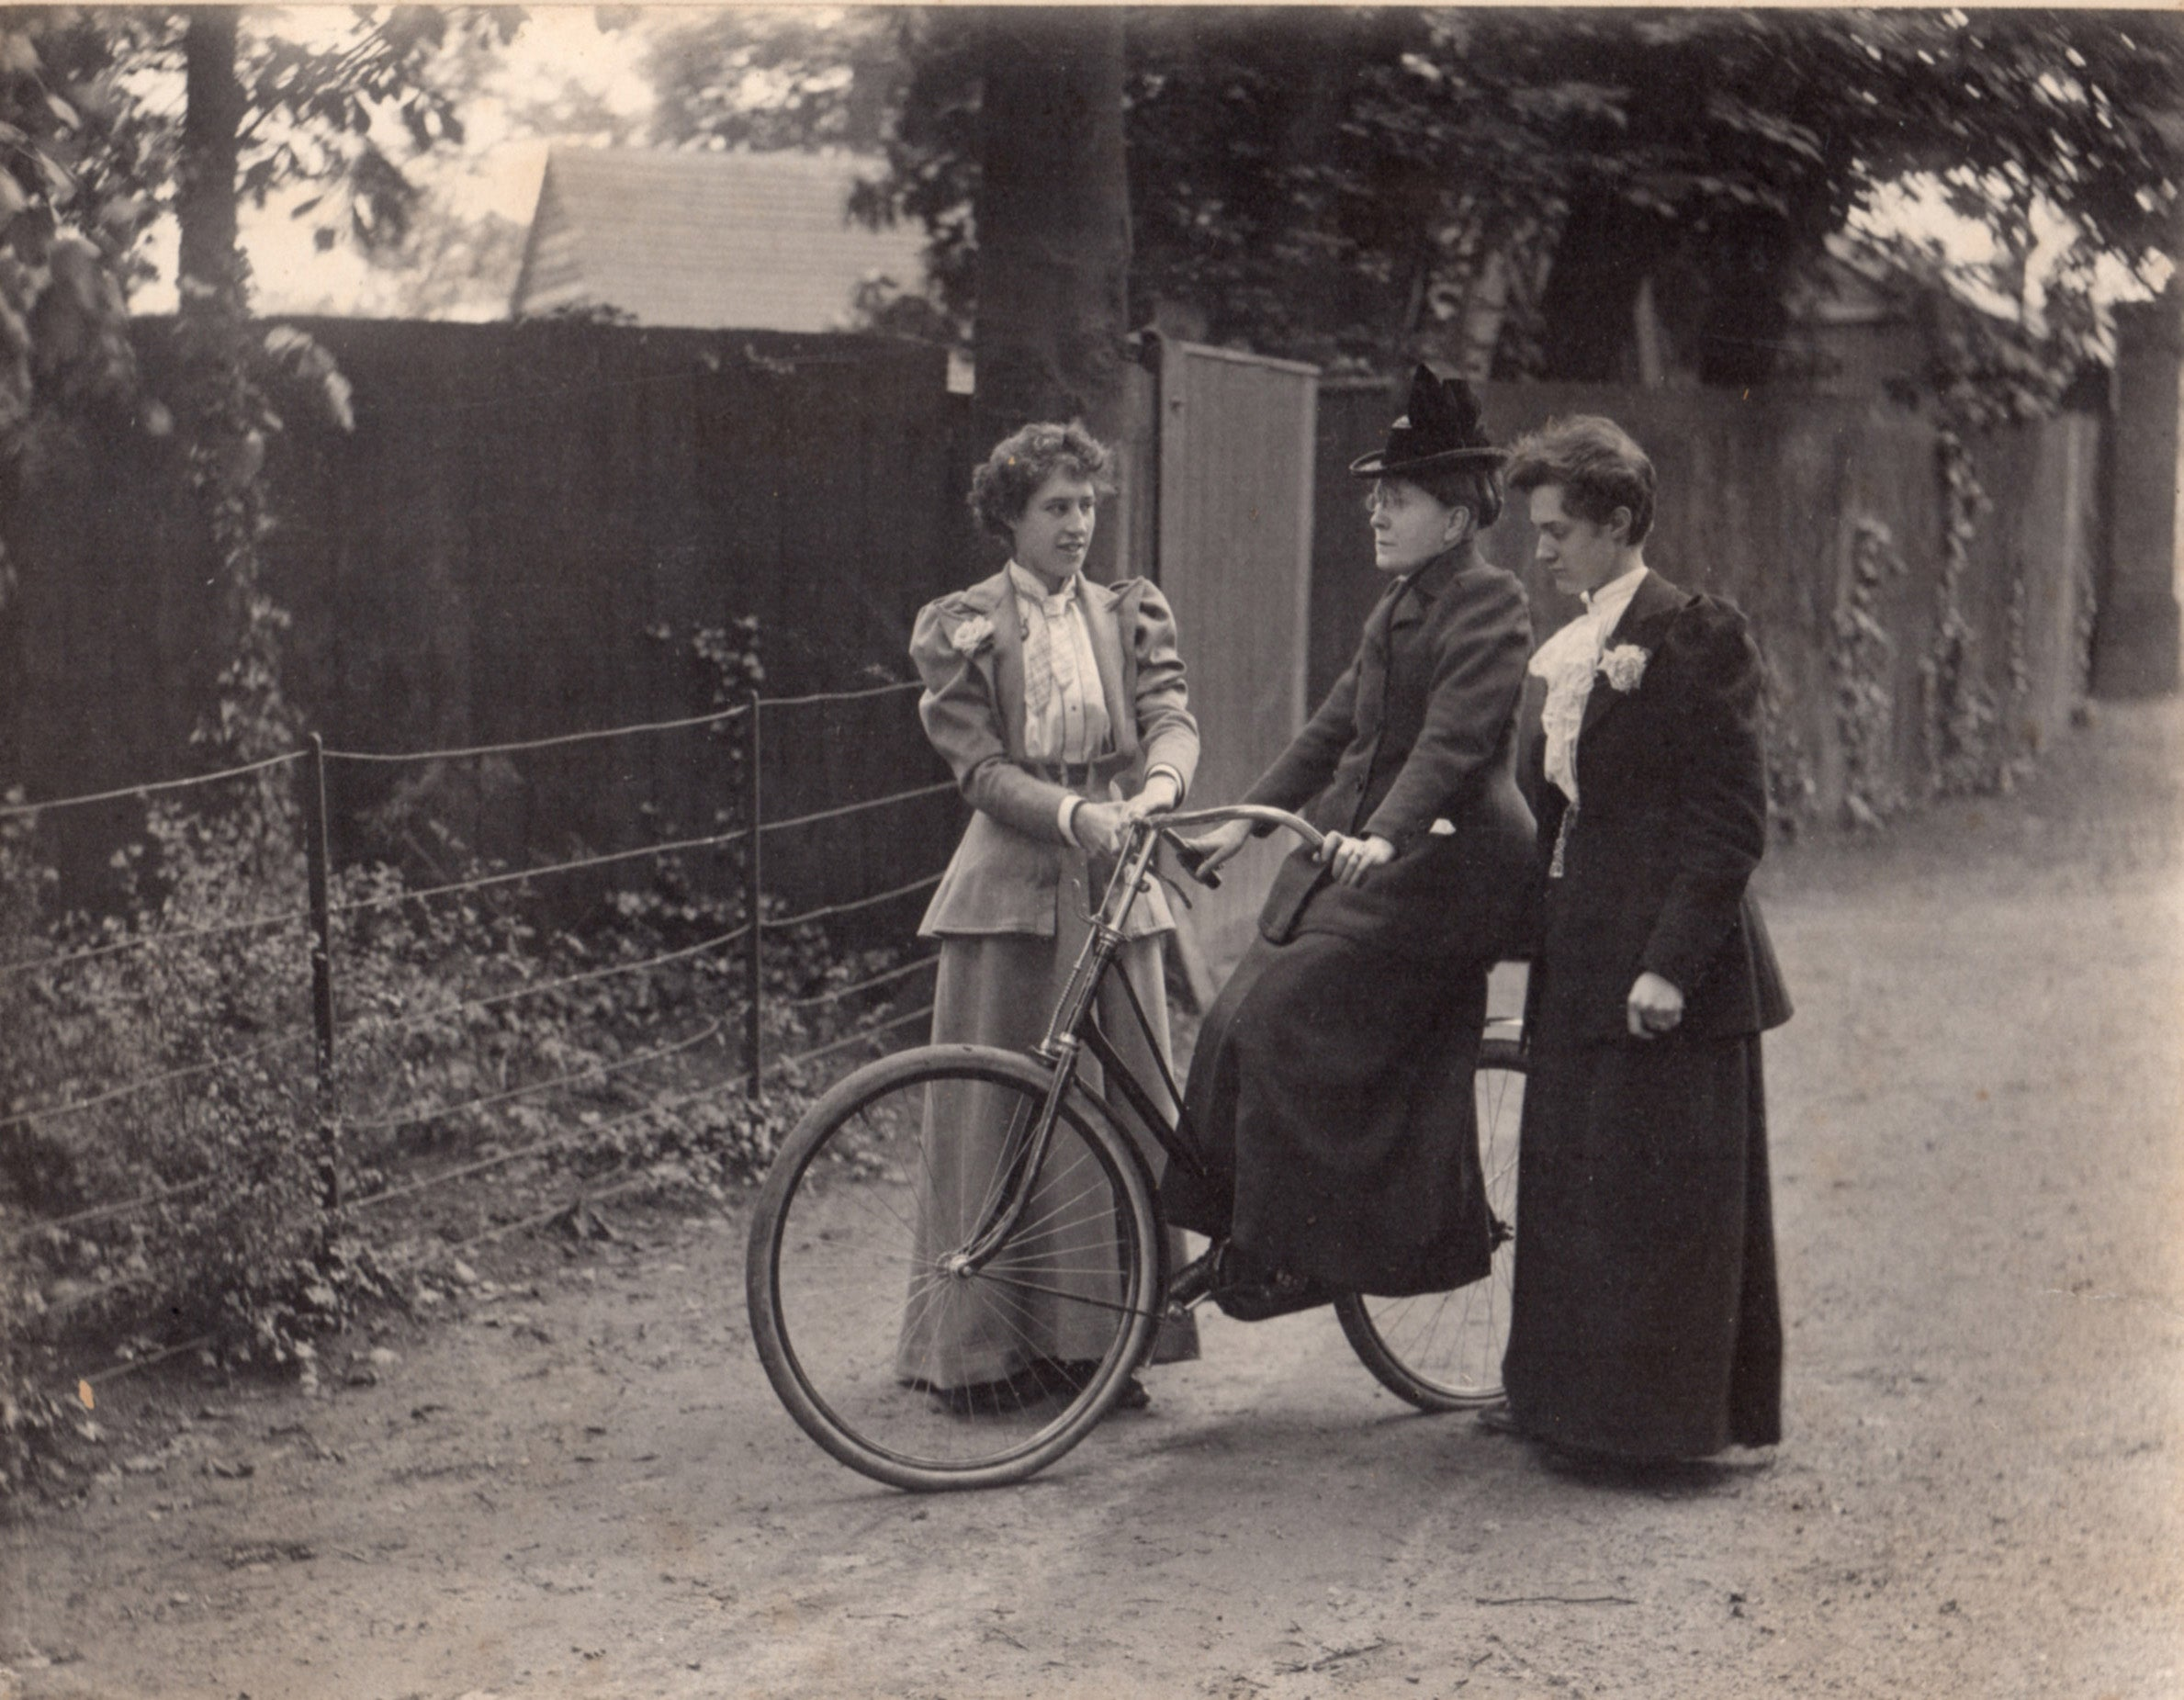 Social reformer Frances Willard rides her bike in a historical photo.